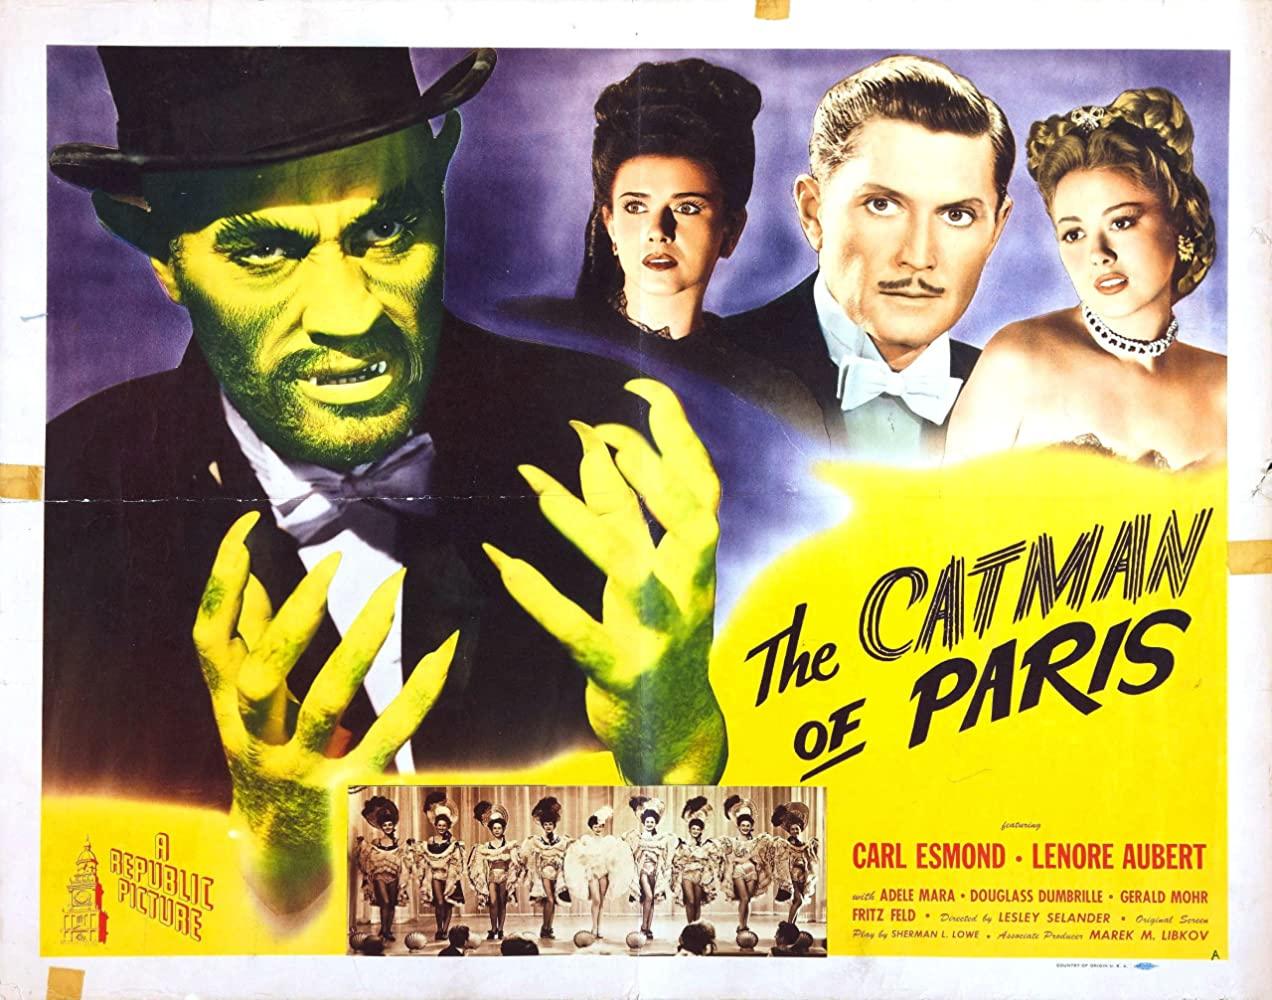 The Catman of Paris (1946)